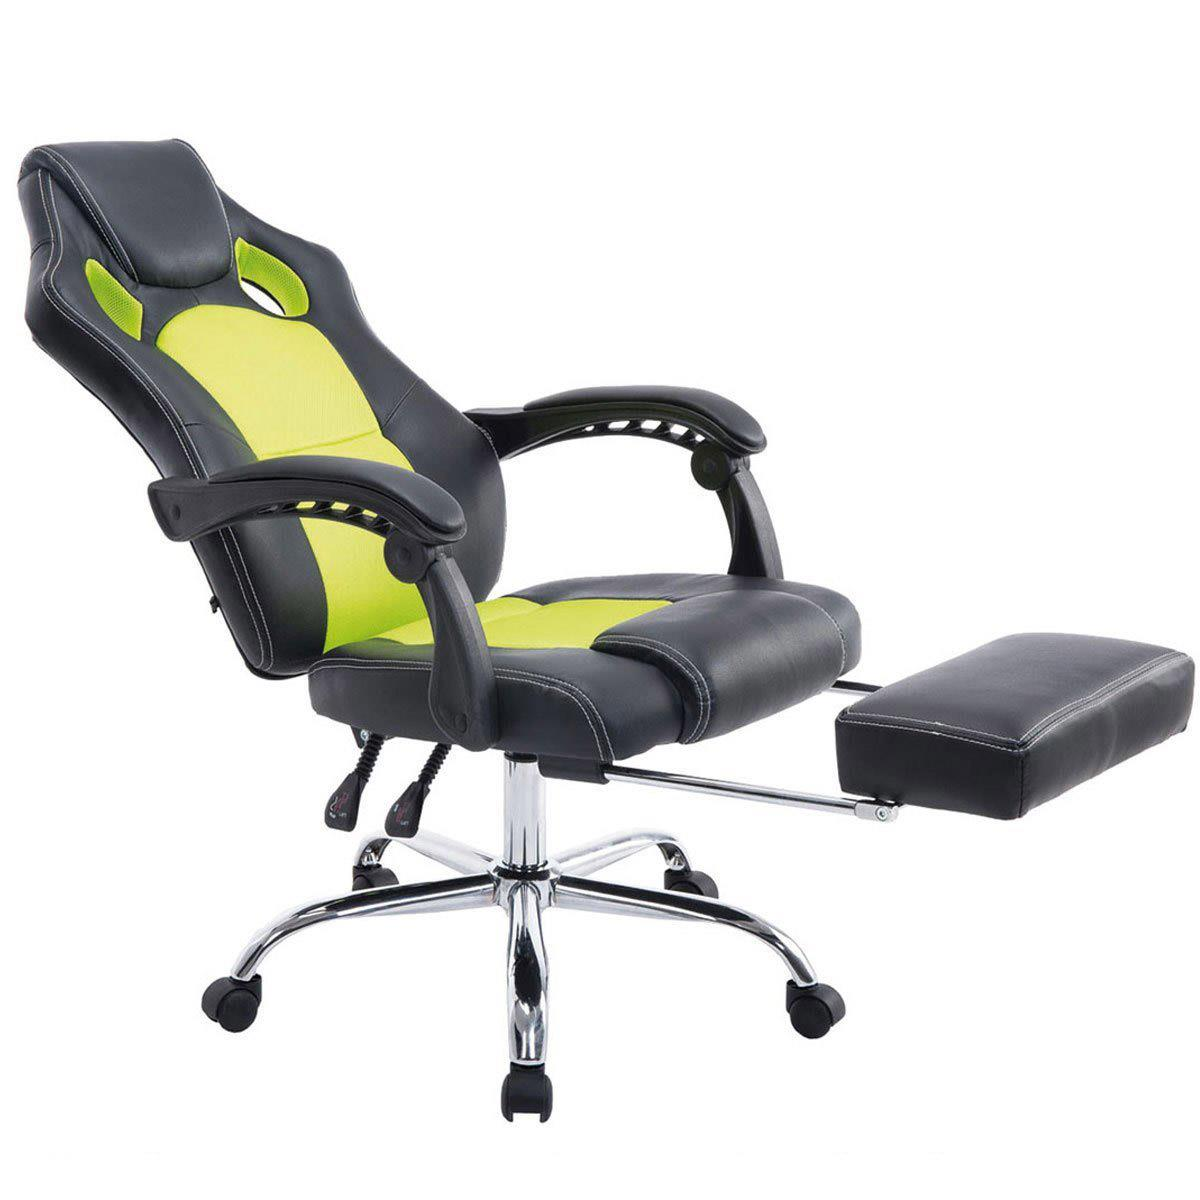 Silla Gaming SPRINT, Reposapiés Extensible, en Piel Negra y Malla Transpirable color Verde